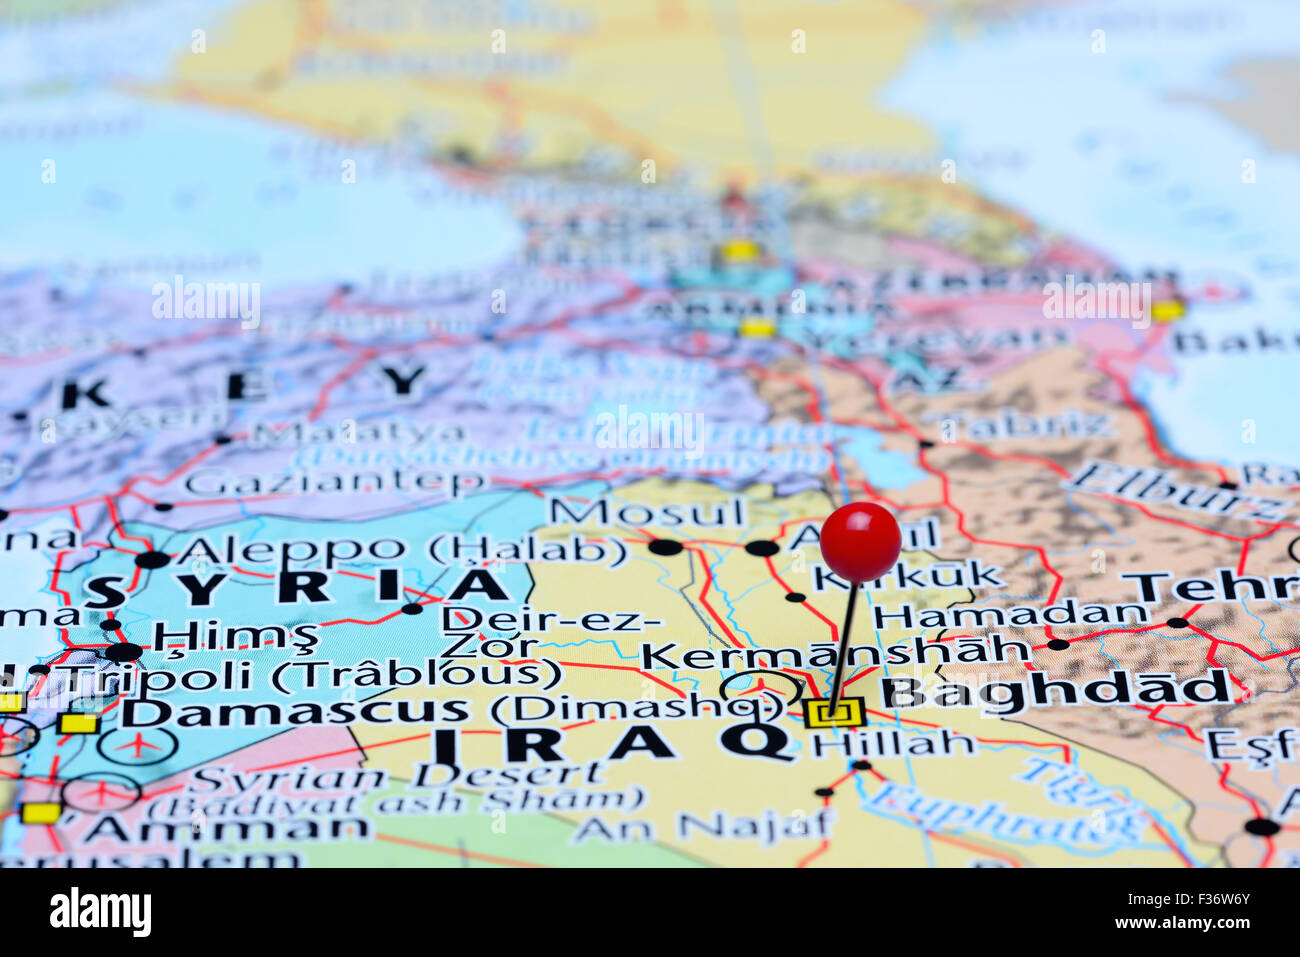 baghdad pinned on a map of asia stock image